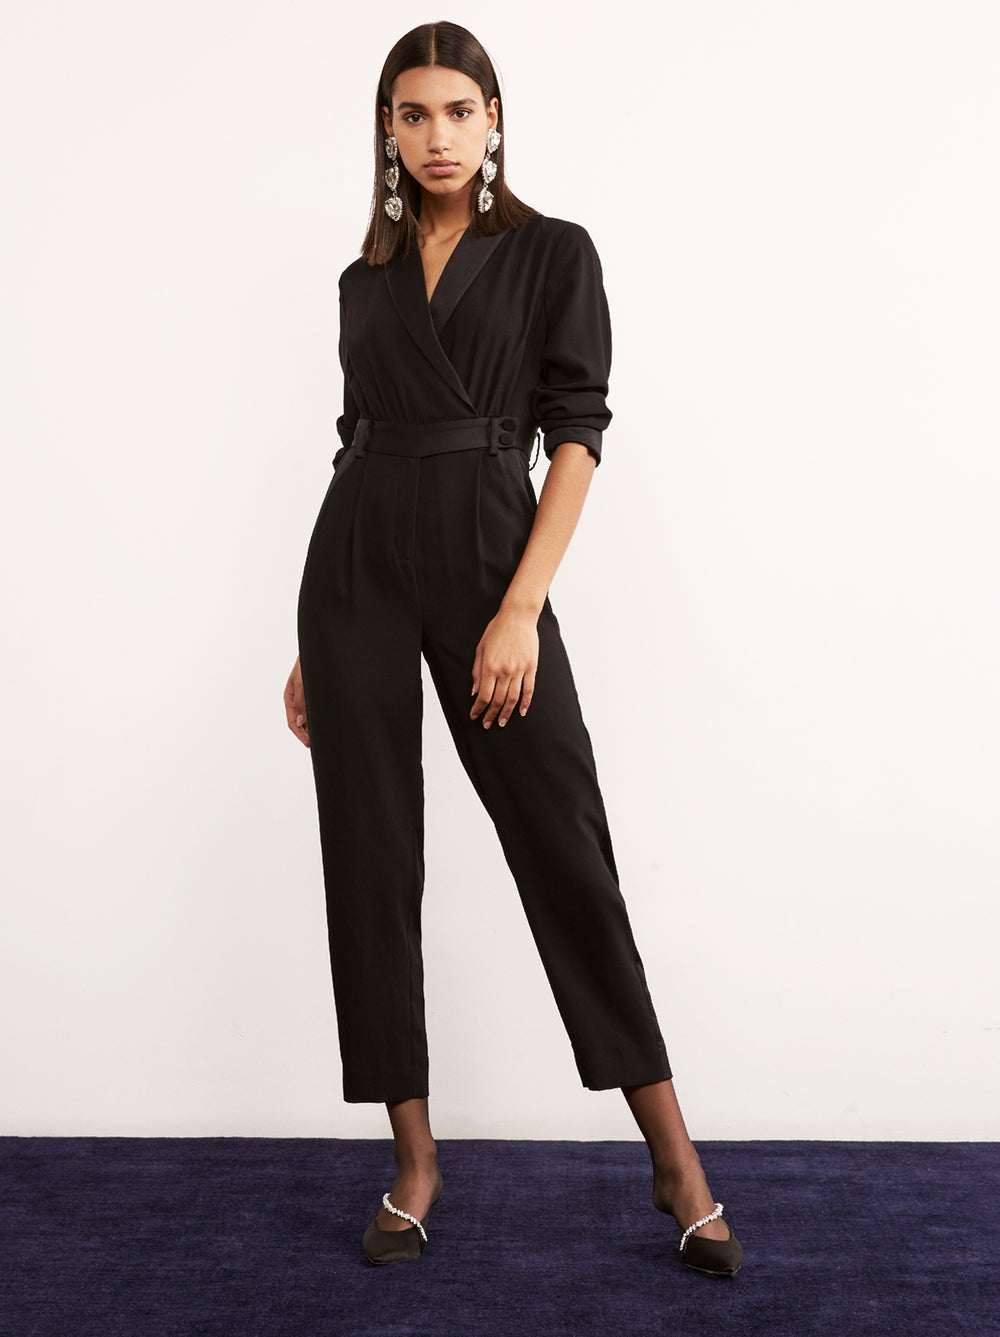 61d6302a82b Amandine Black Tailored Tuxedo Jumpsuit by KITRI Studio ...